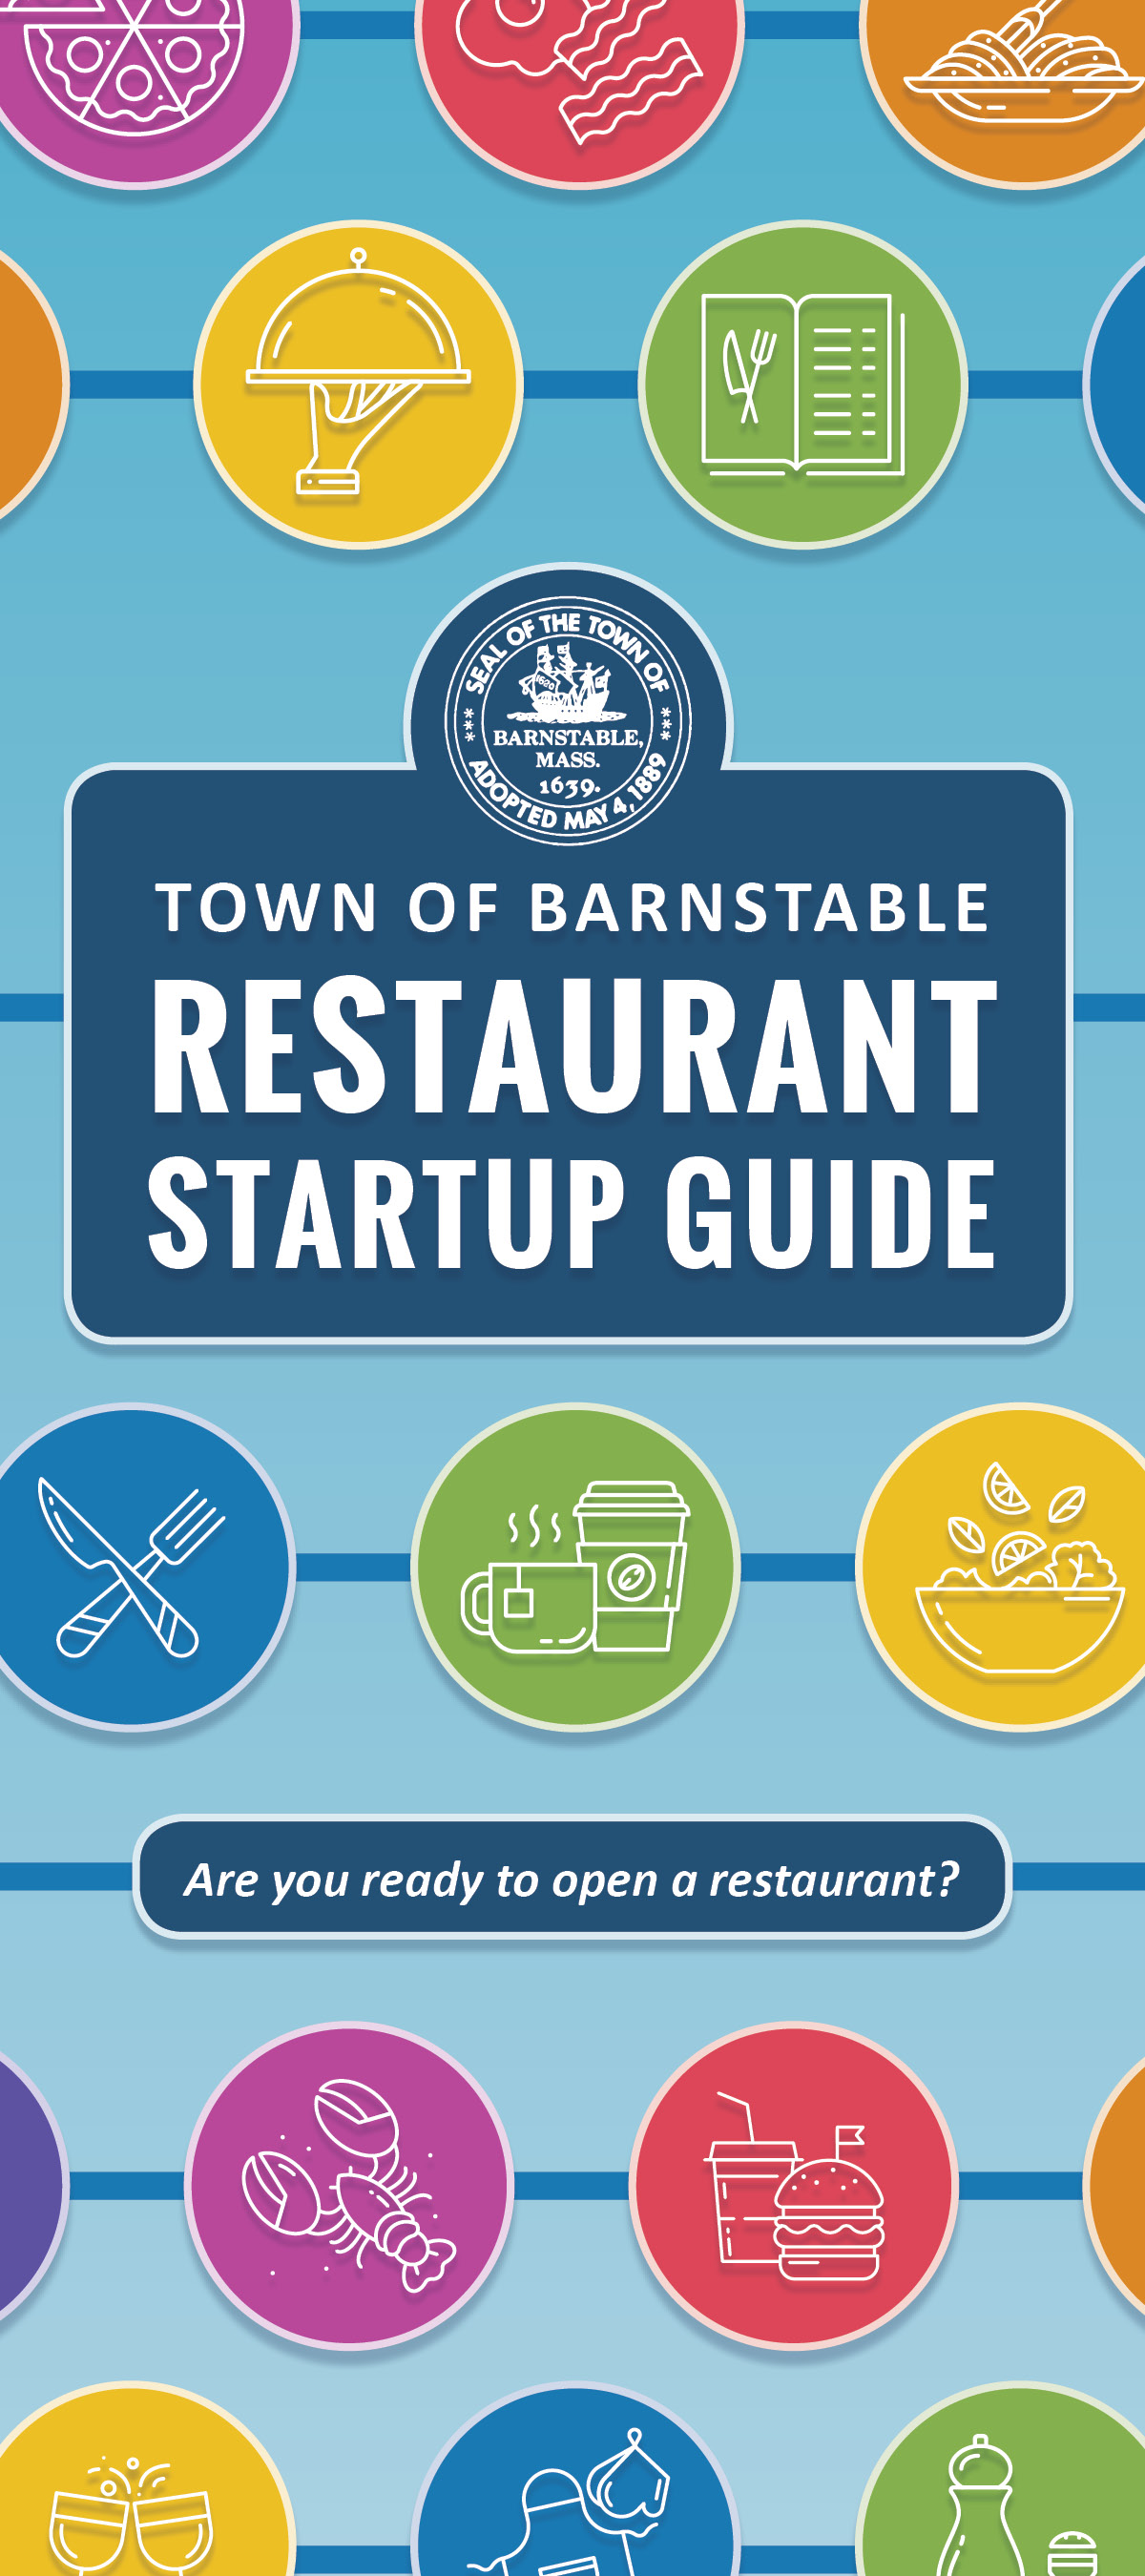 town-of-barnstable-restaurant-startup-guide.jpg